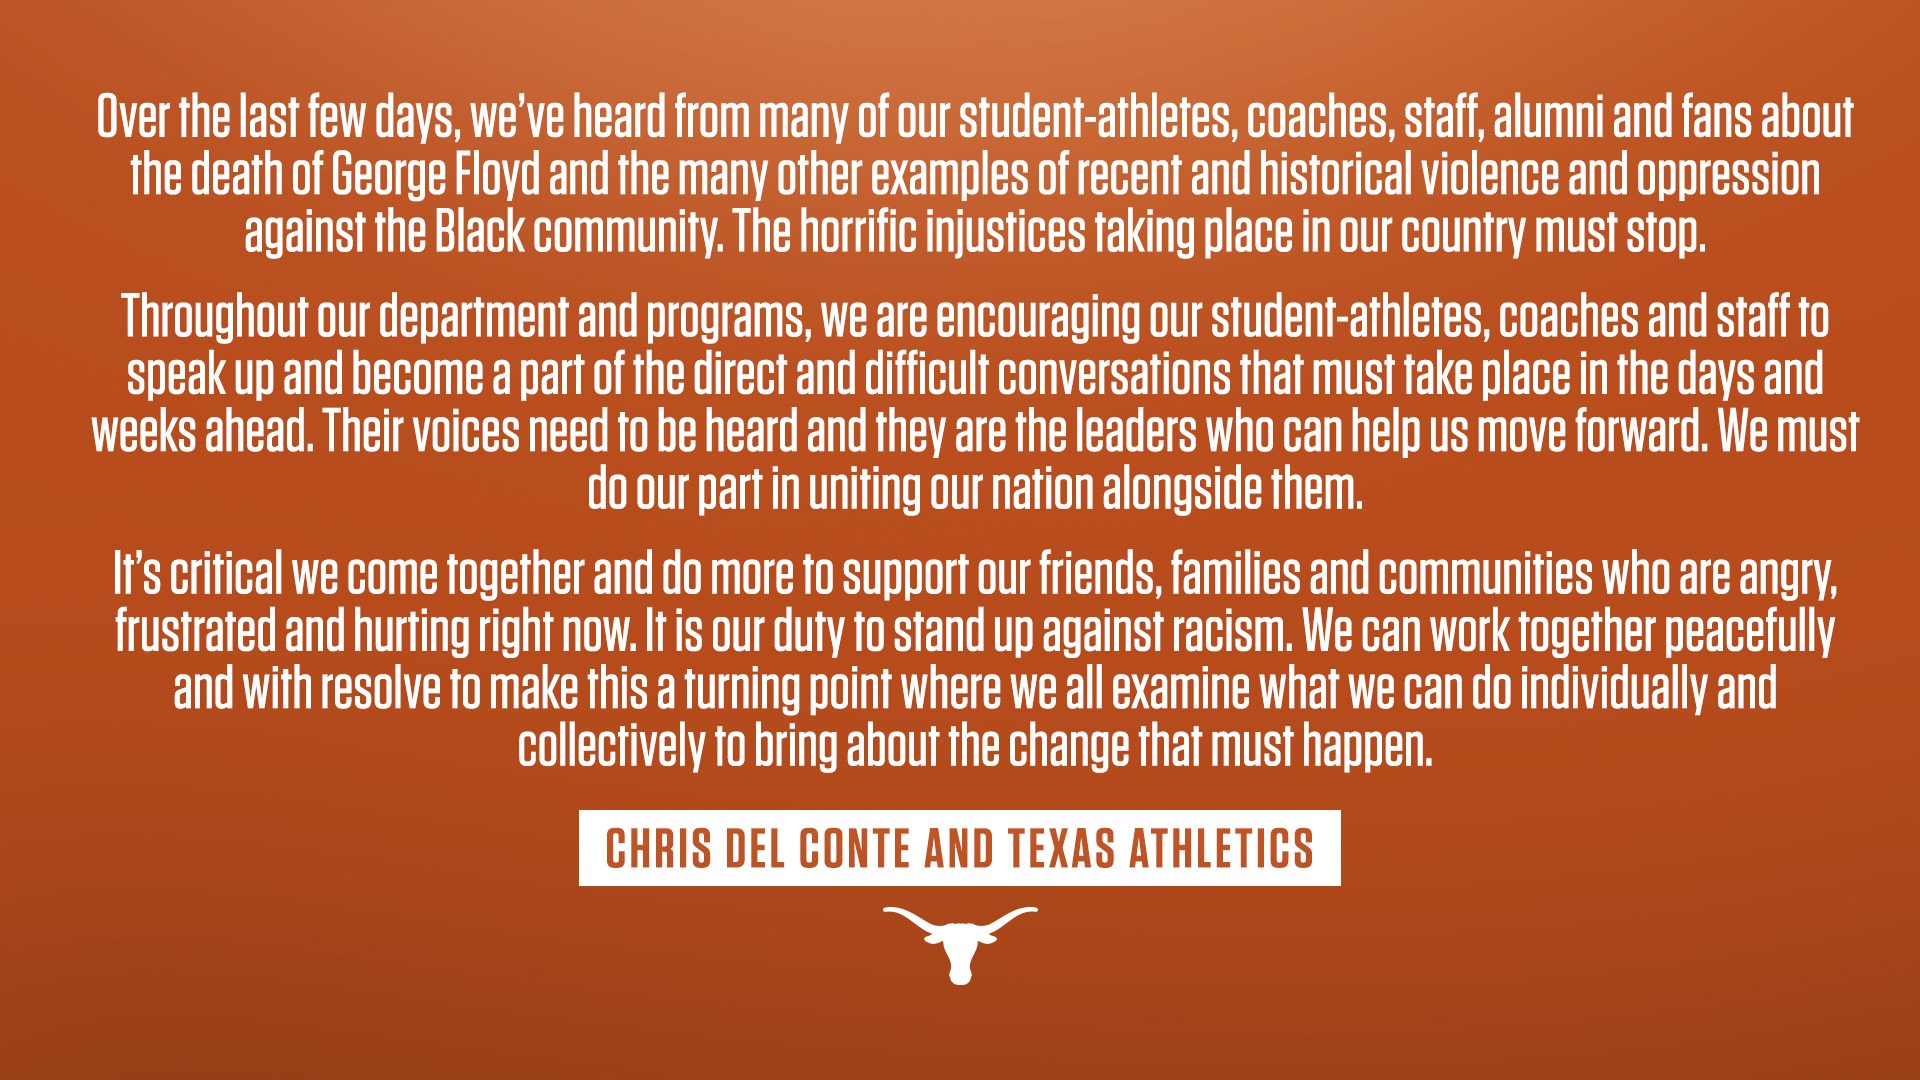 Statement from Texas Longhorns Athletic Director